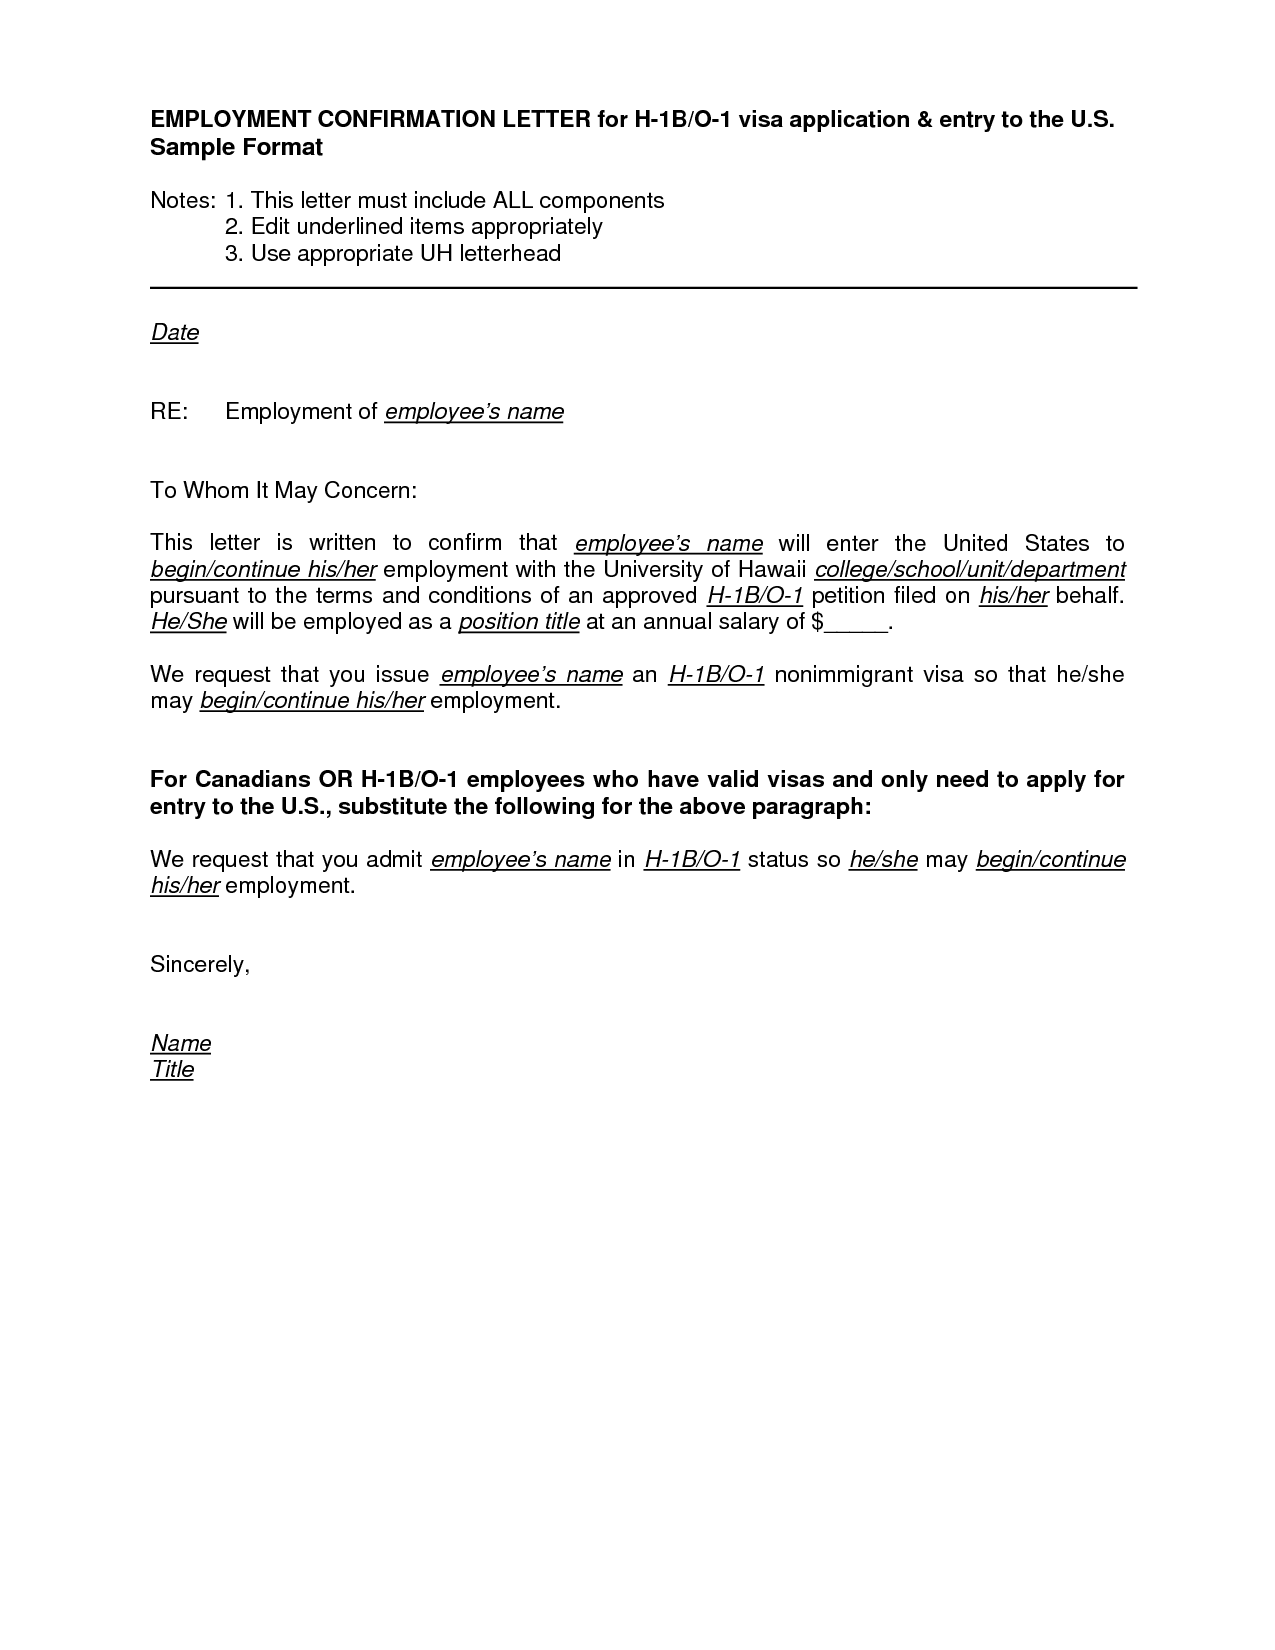 Employment Letter Visa Application Insurance Claim Quote Template Letter Template Word Confirmation Letter Employment Letter Sample